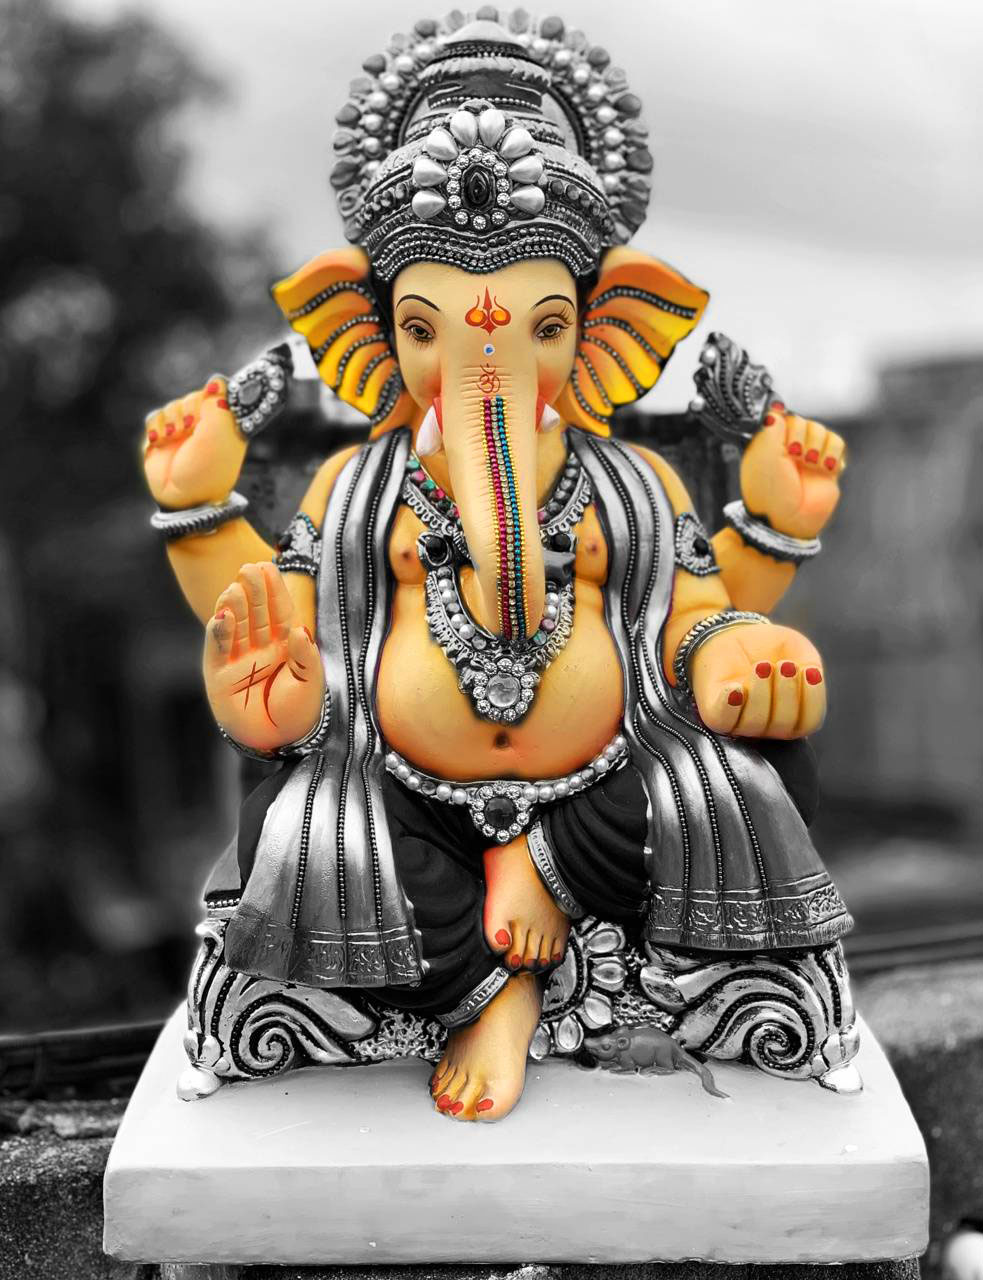 free download God Whatsapp Dp Images